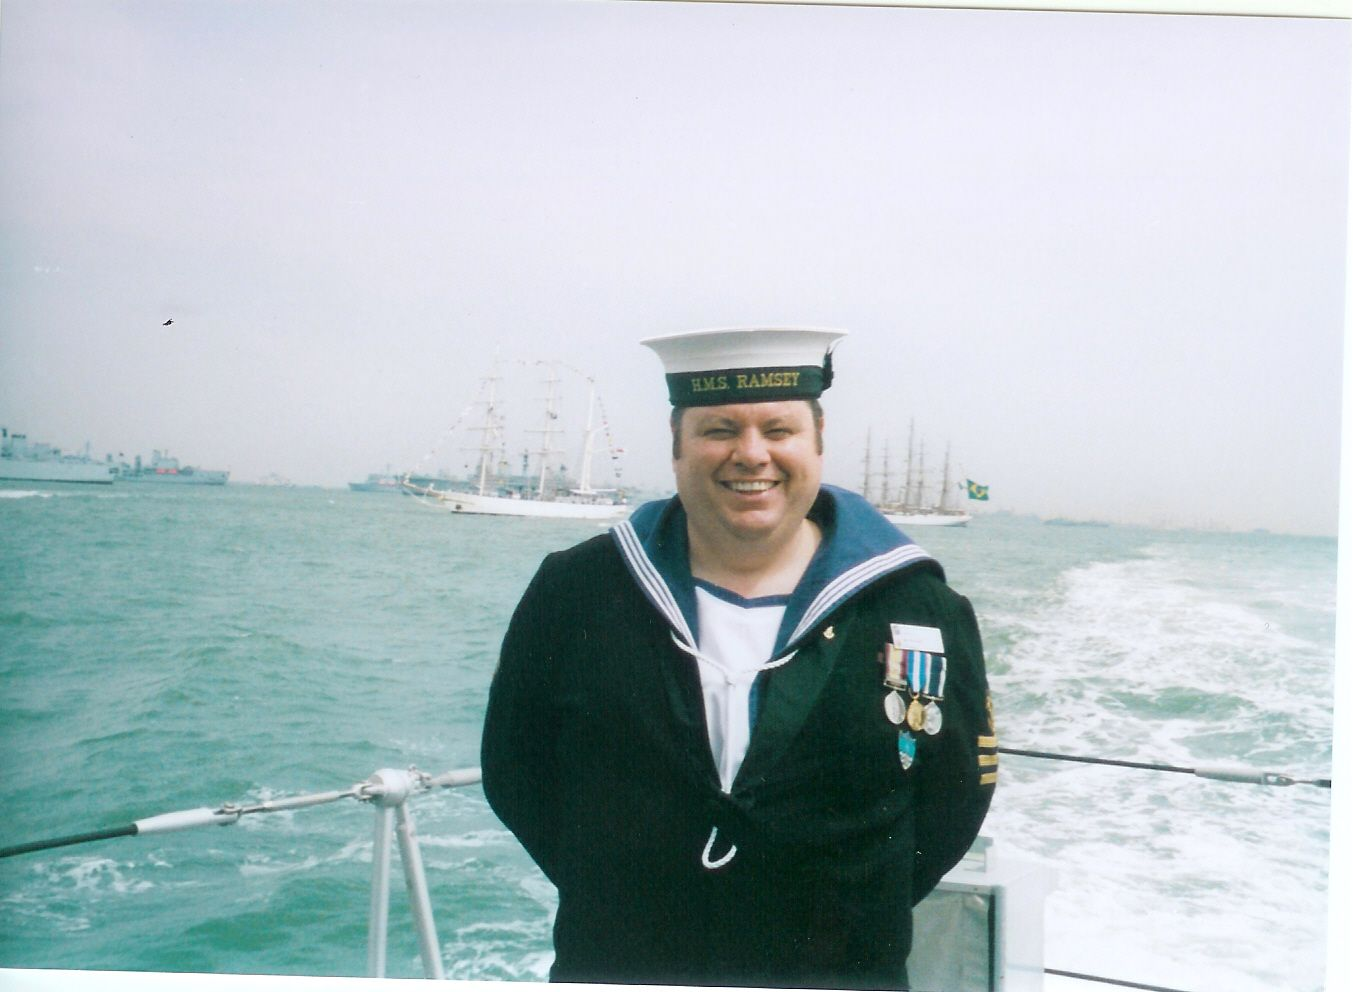 On the Ramsey during the IFR in June 2005